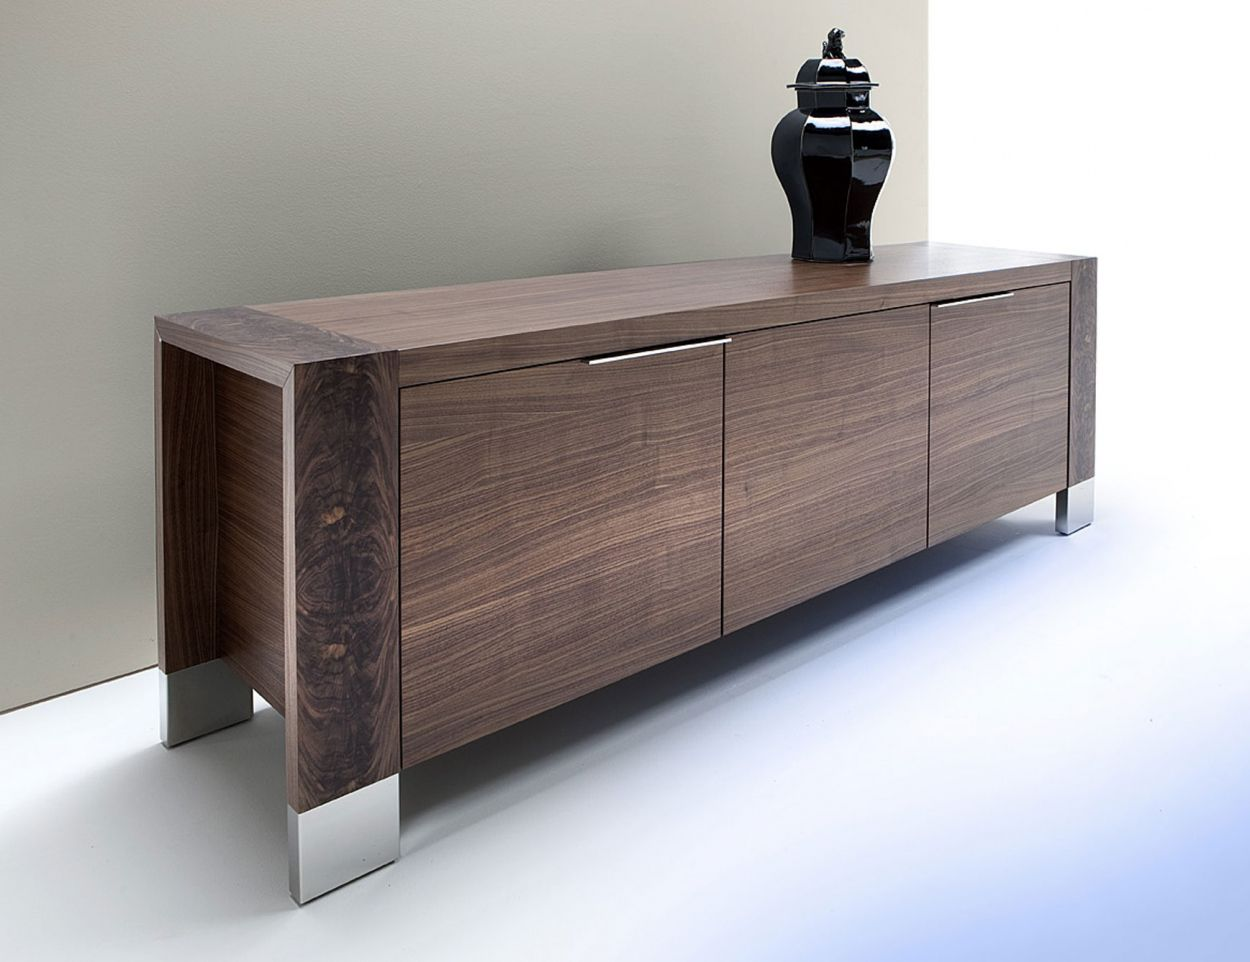 modern buffet table furniture  best bedroom furniture check more athttpsearchfororangecountyhomes. modern buffet table furniture  best bedroom furniture check more